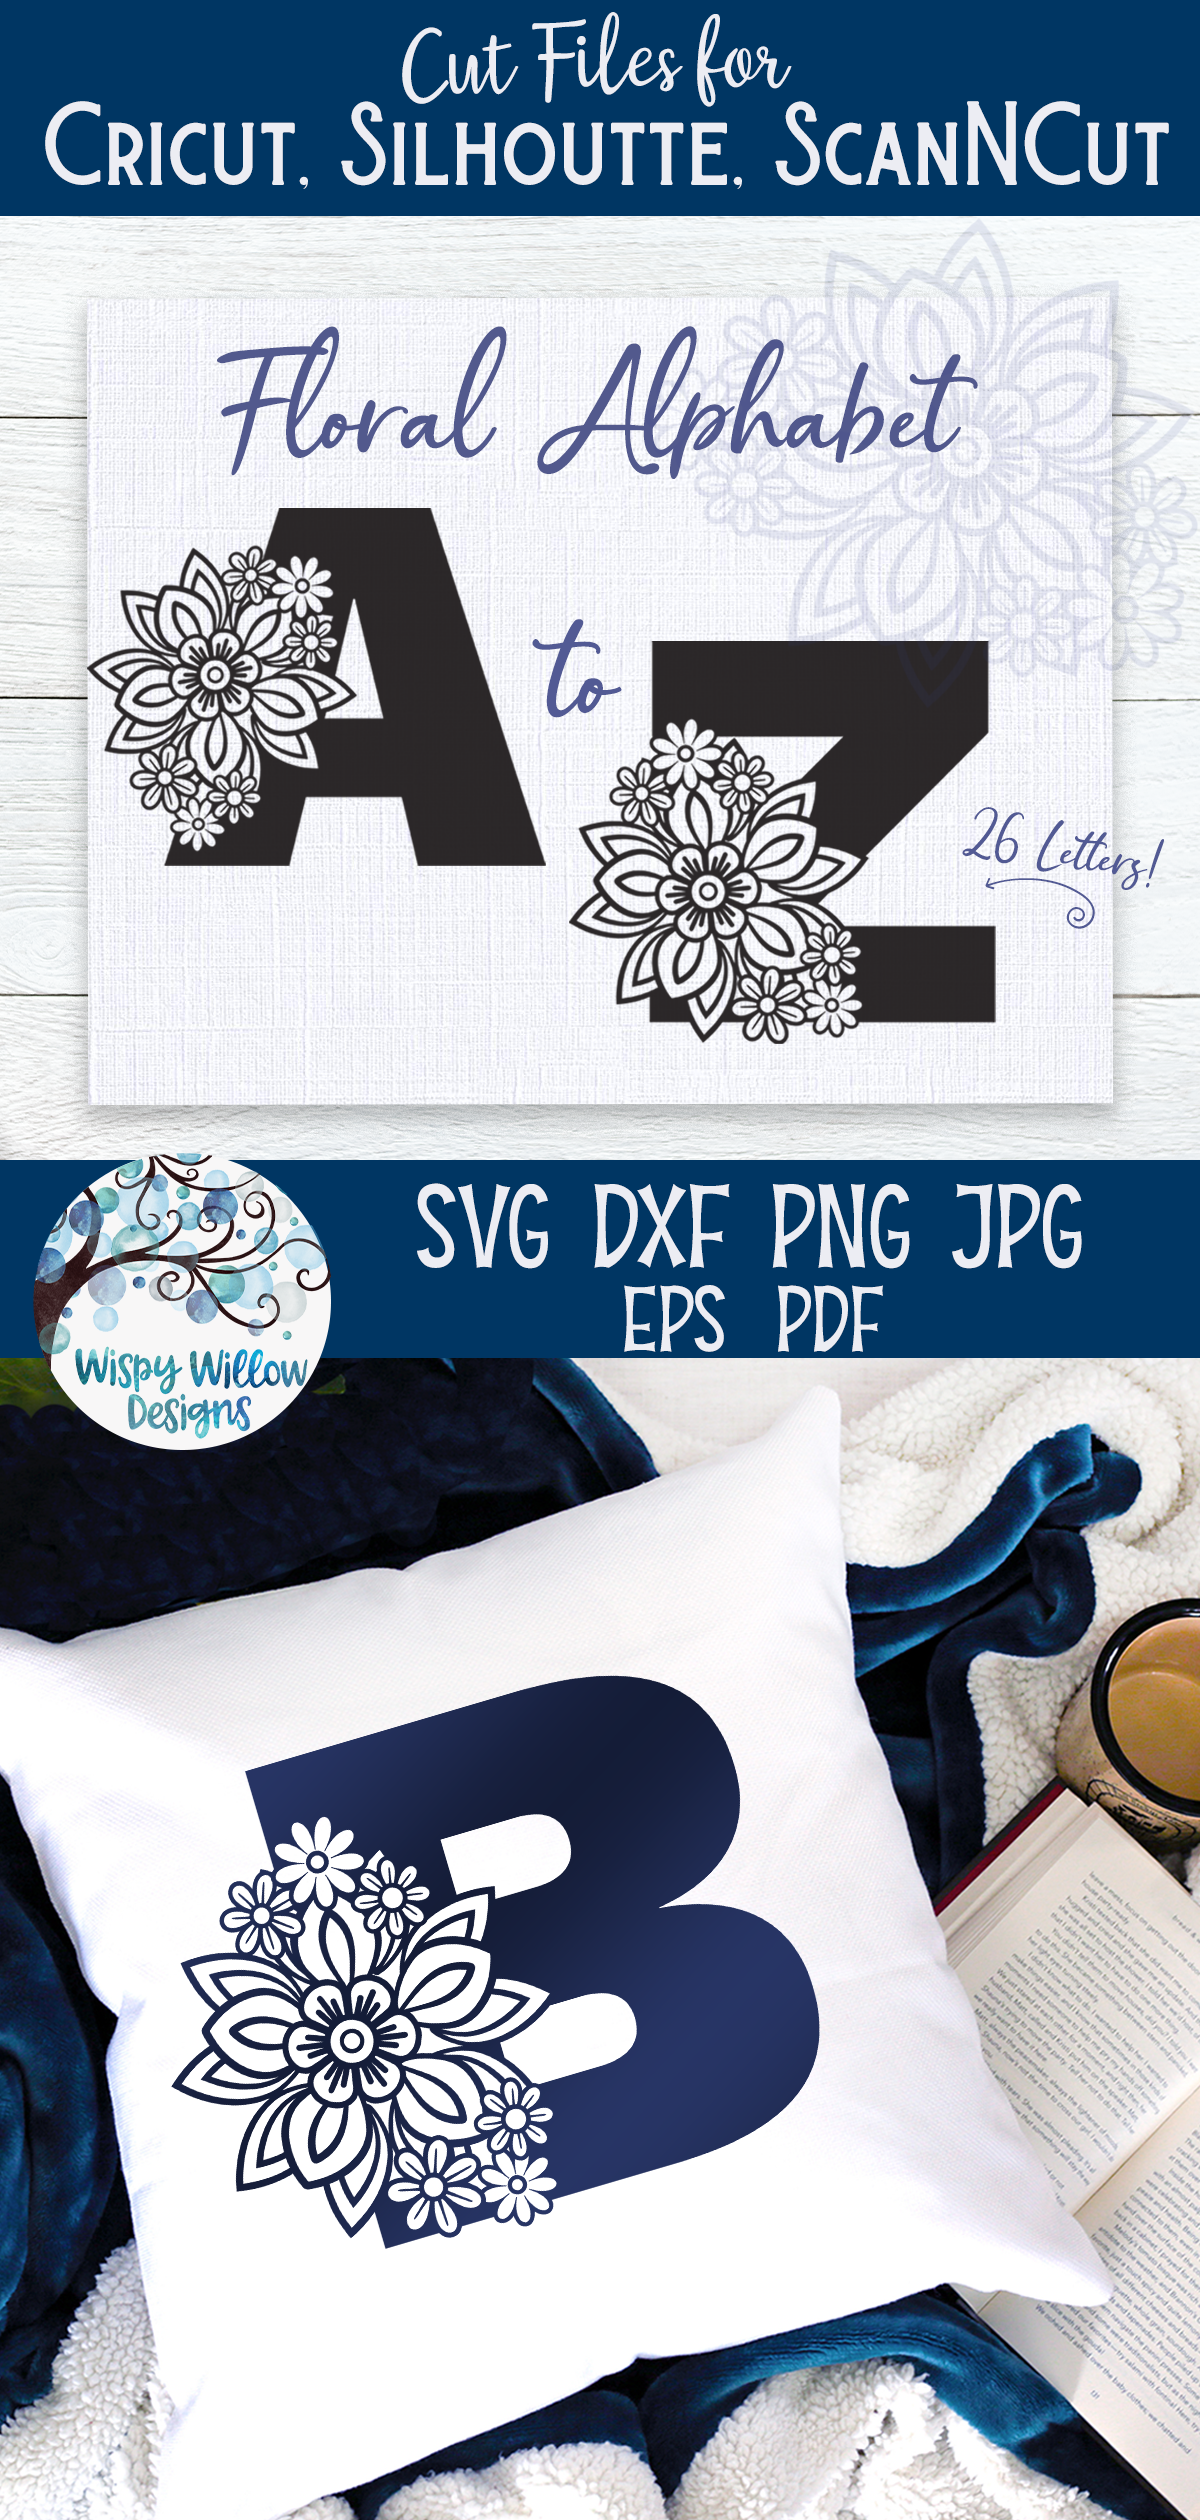 Floral Alphabet SVG Bundle | A to Z Floral Letters SVG example image 6